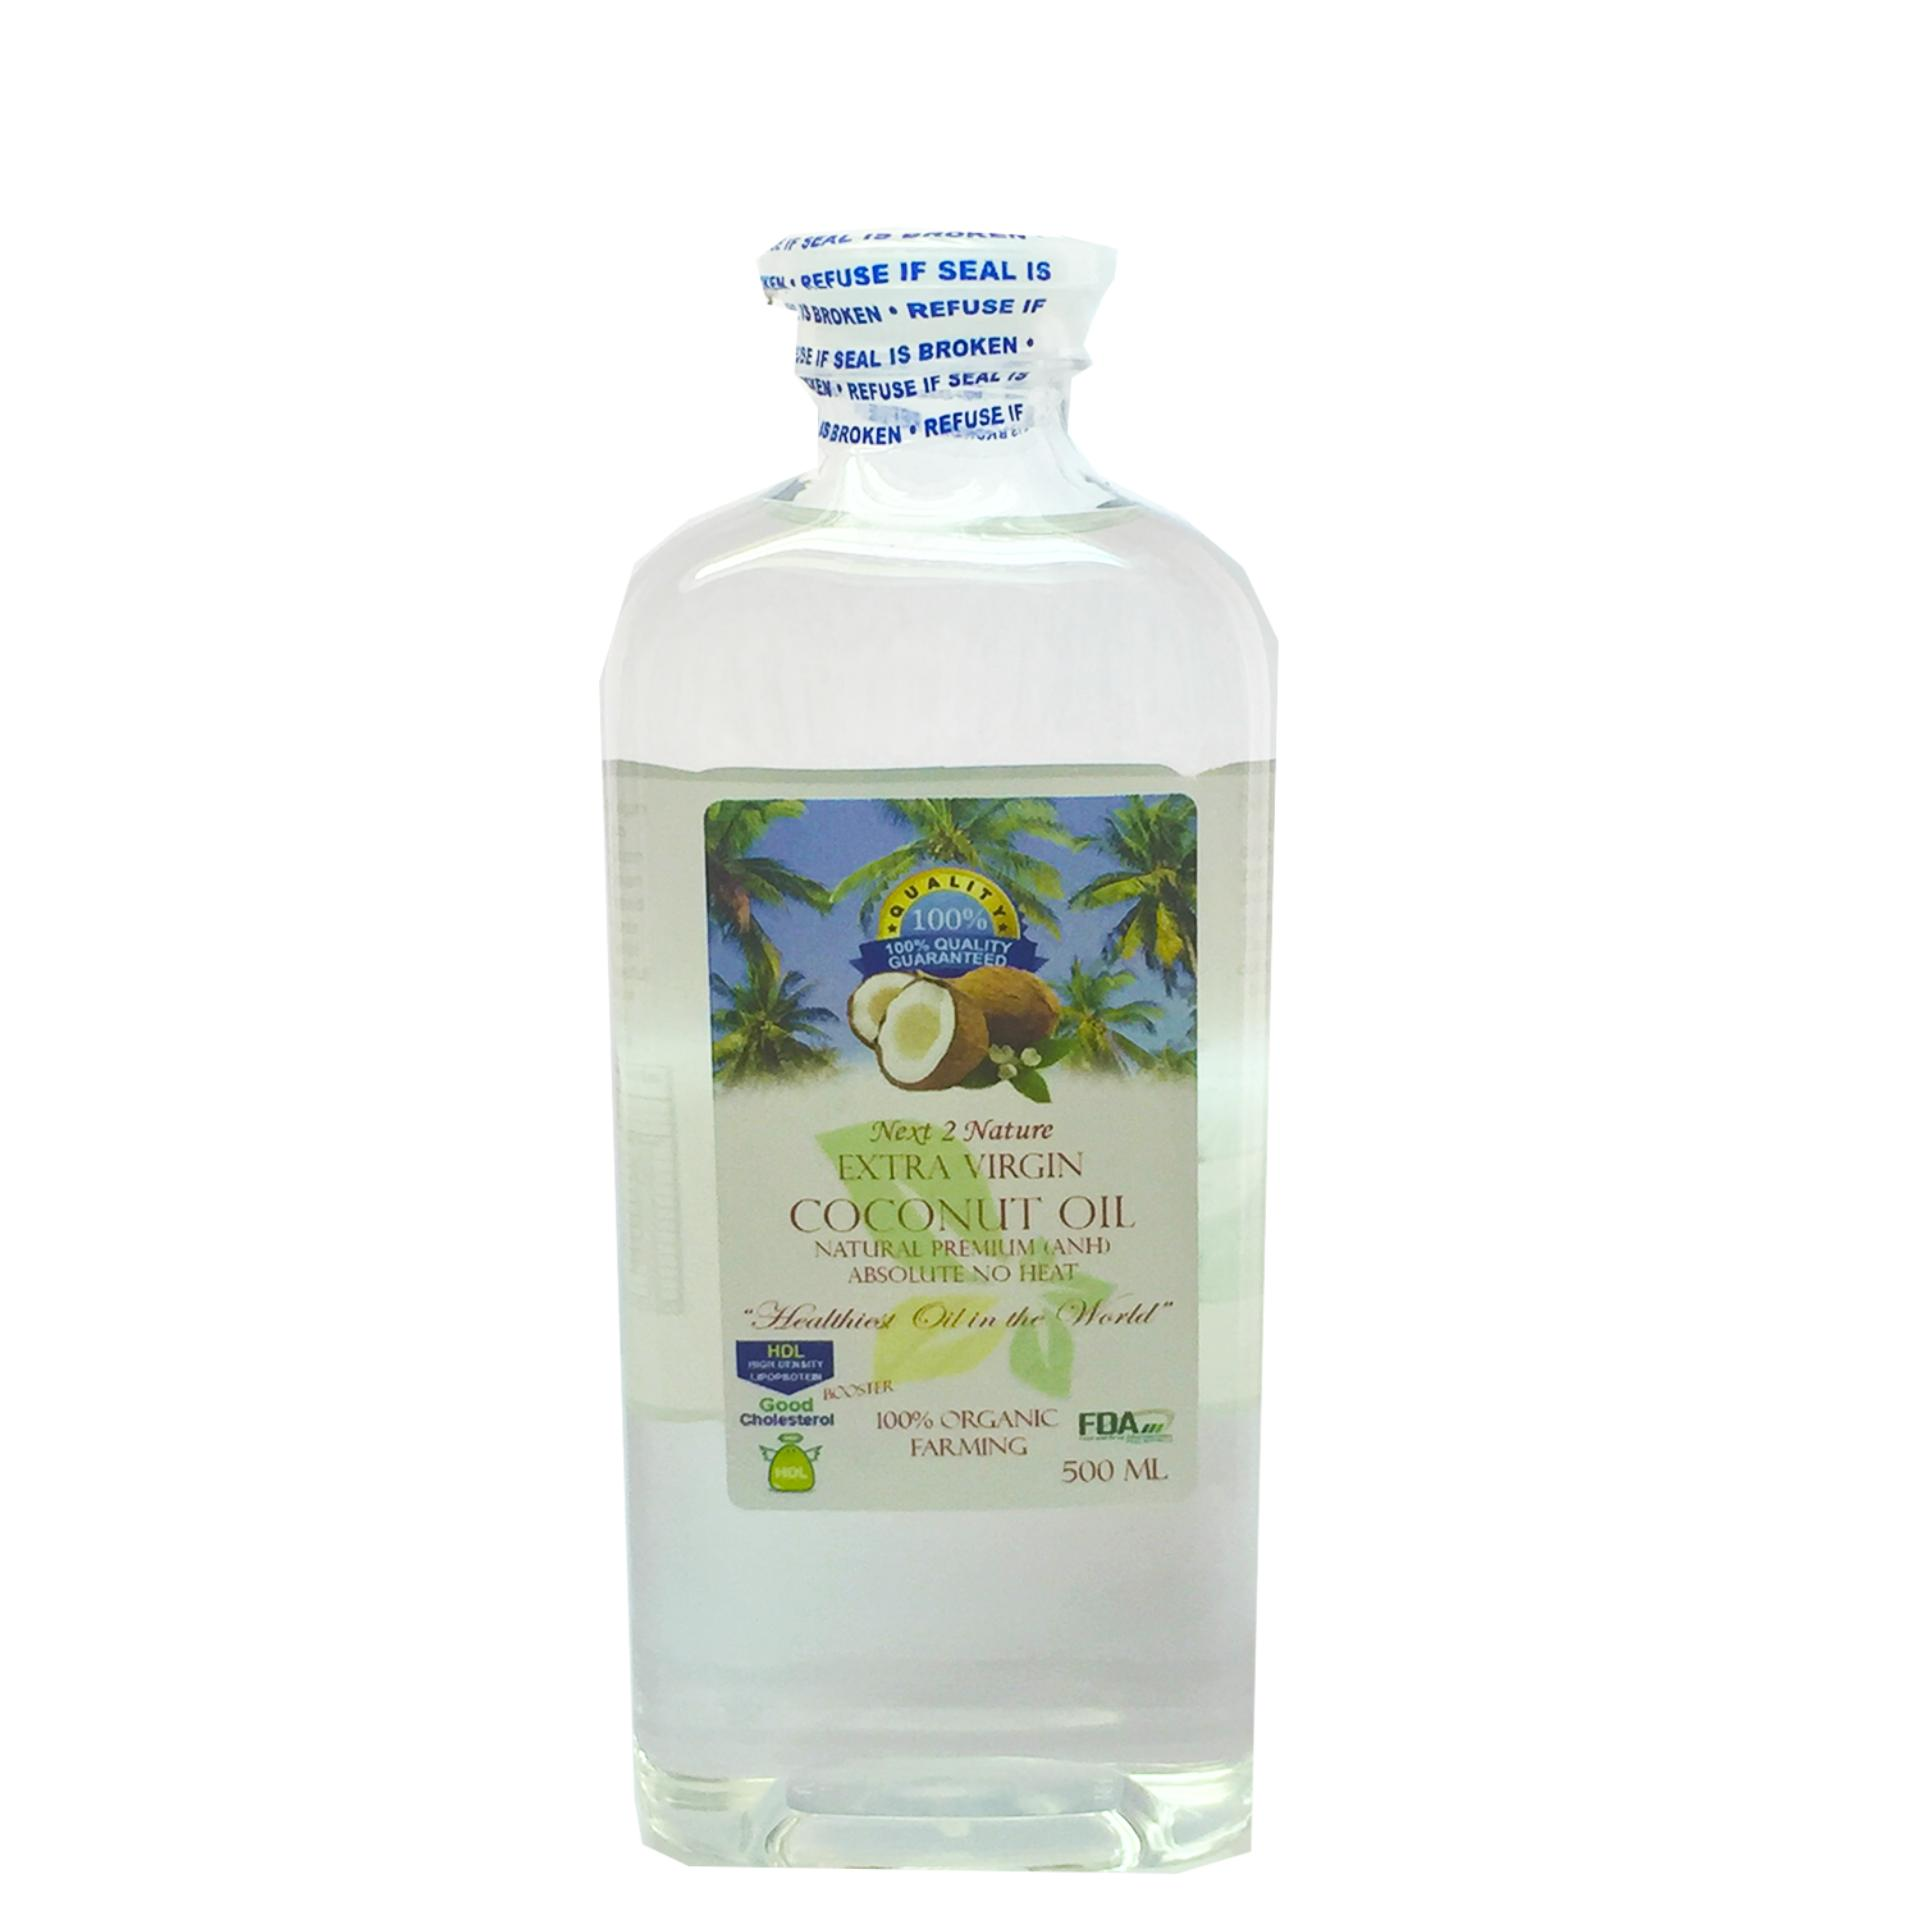 Buy Sell Cheapest Precious Virgin Coconut Best Quality Product Oil 125 Ml Next 2 Nature Extra 500ml